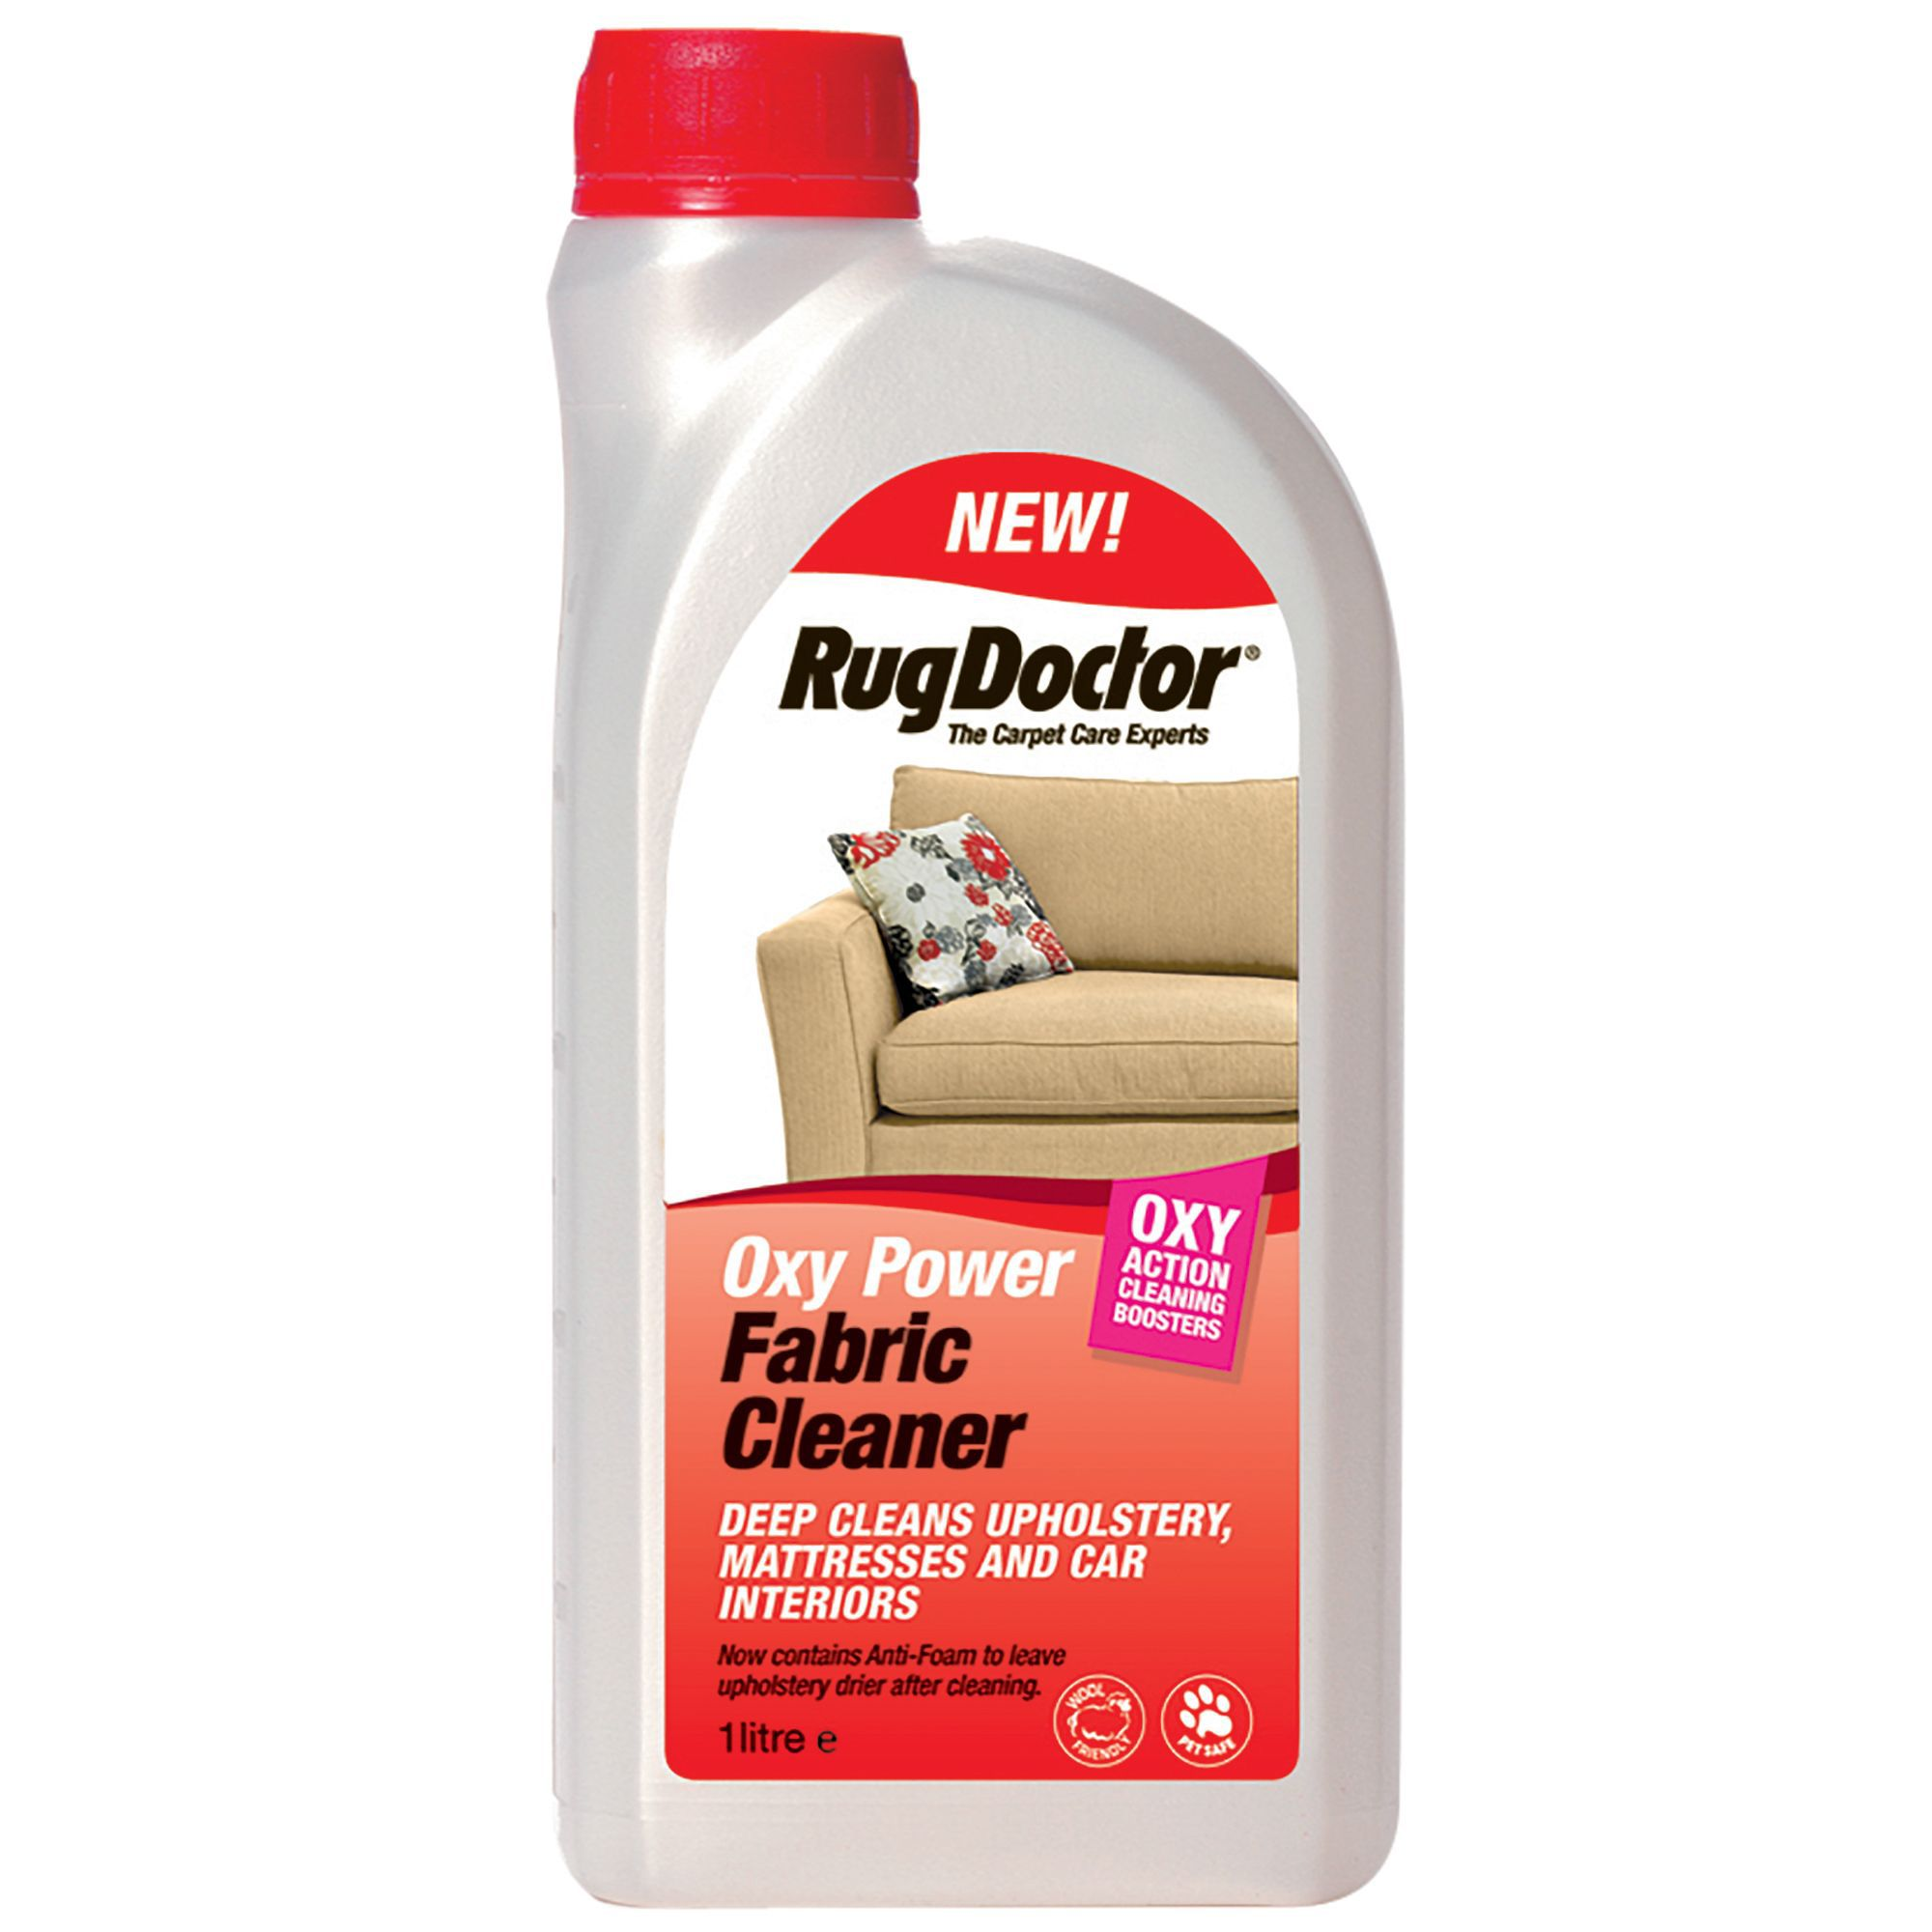 Rug Doctor Oxy Fabric Cleaner 1000 Ml Departments Diy At B Q